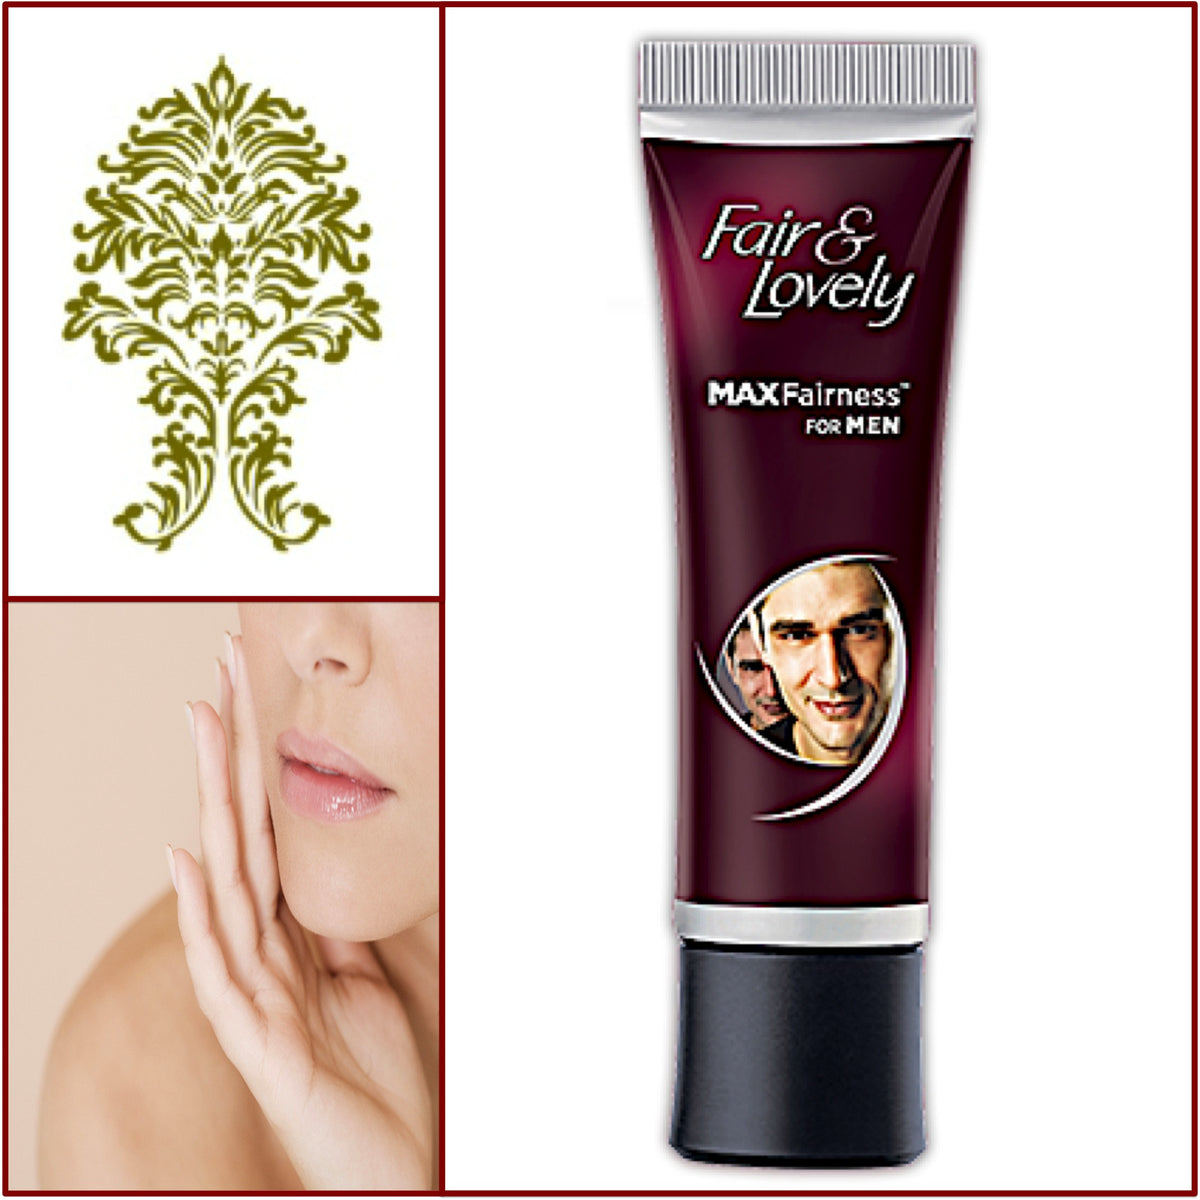 Fair & Lovely Max Fairness for Men Cream 50g